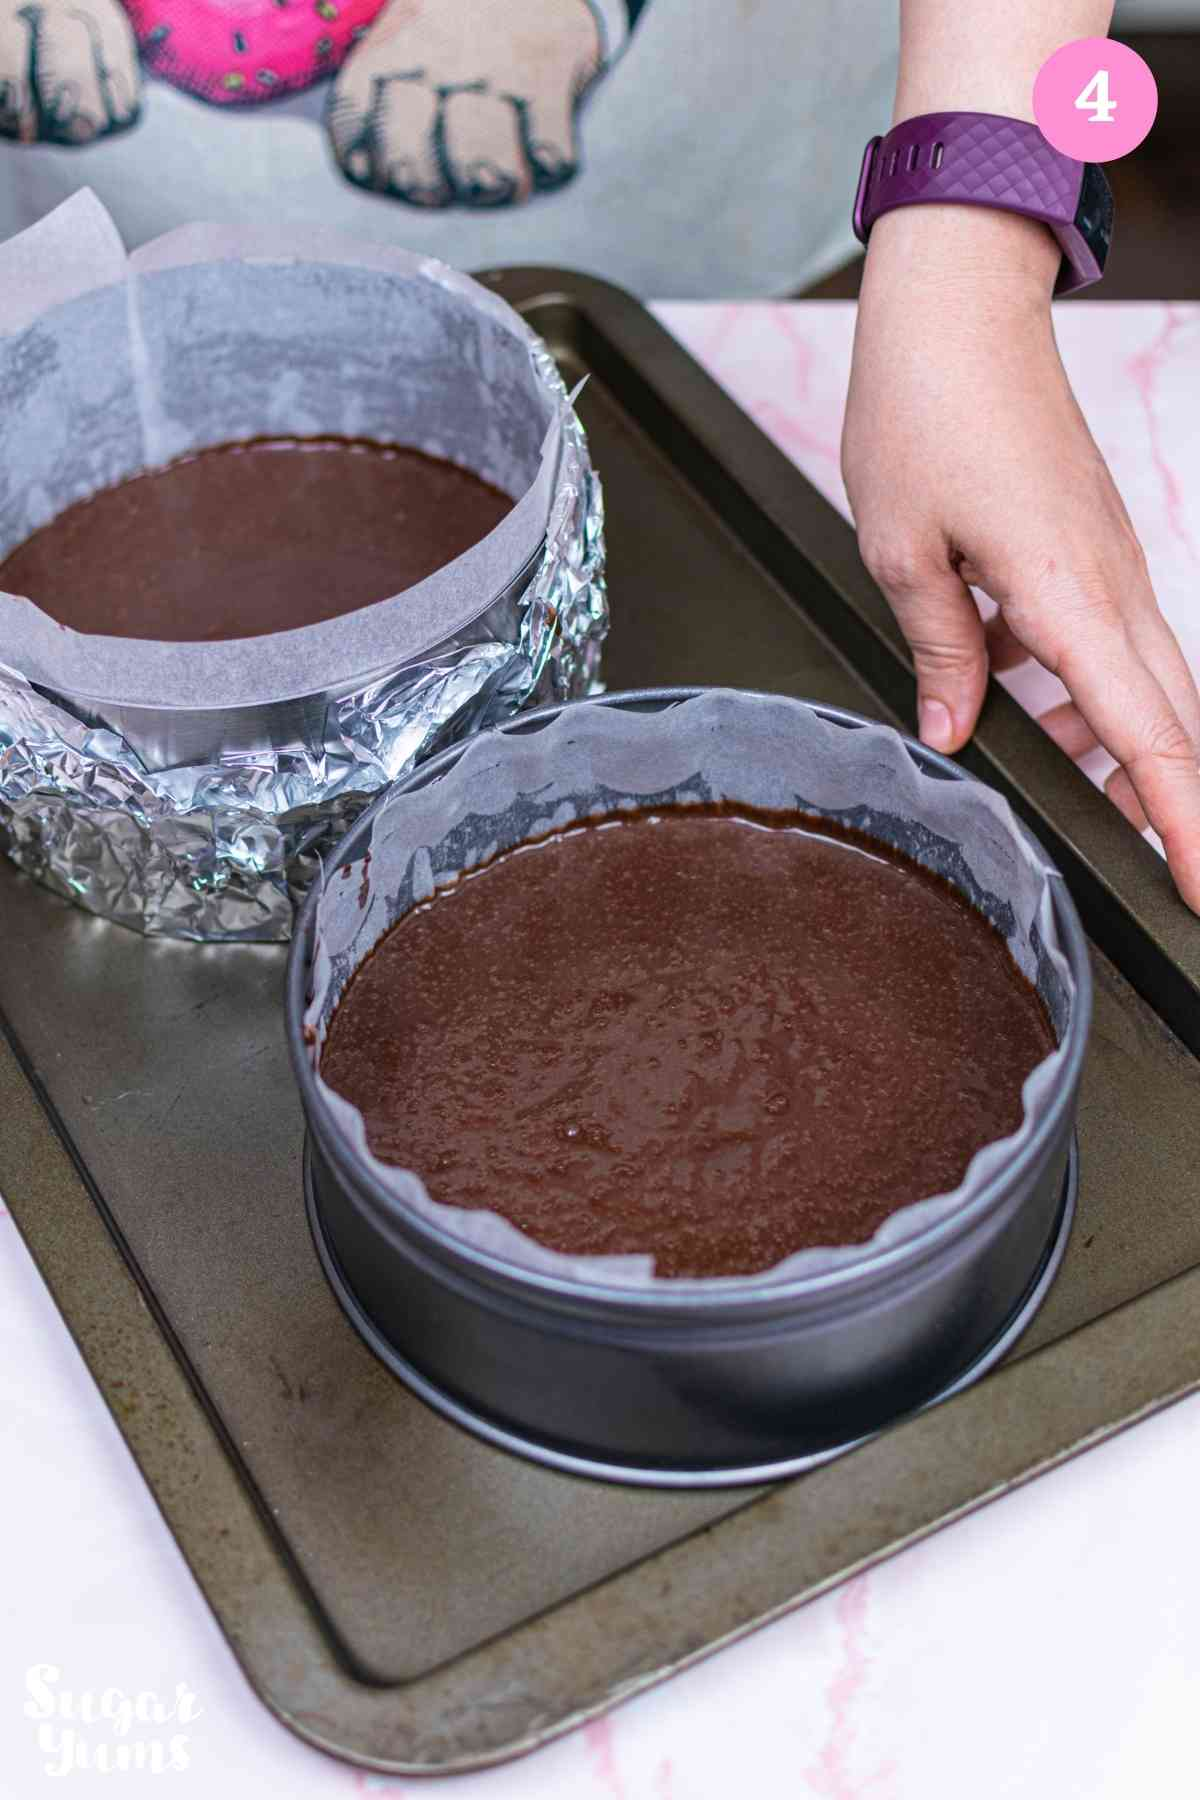 Batter inside two round cake pans